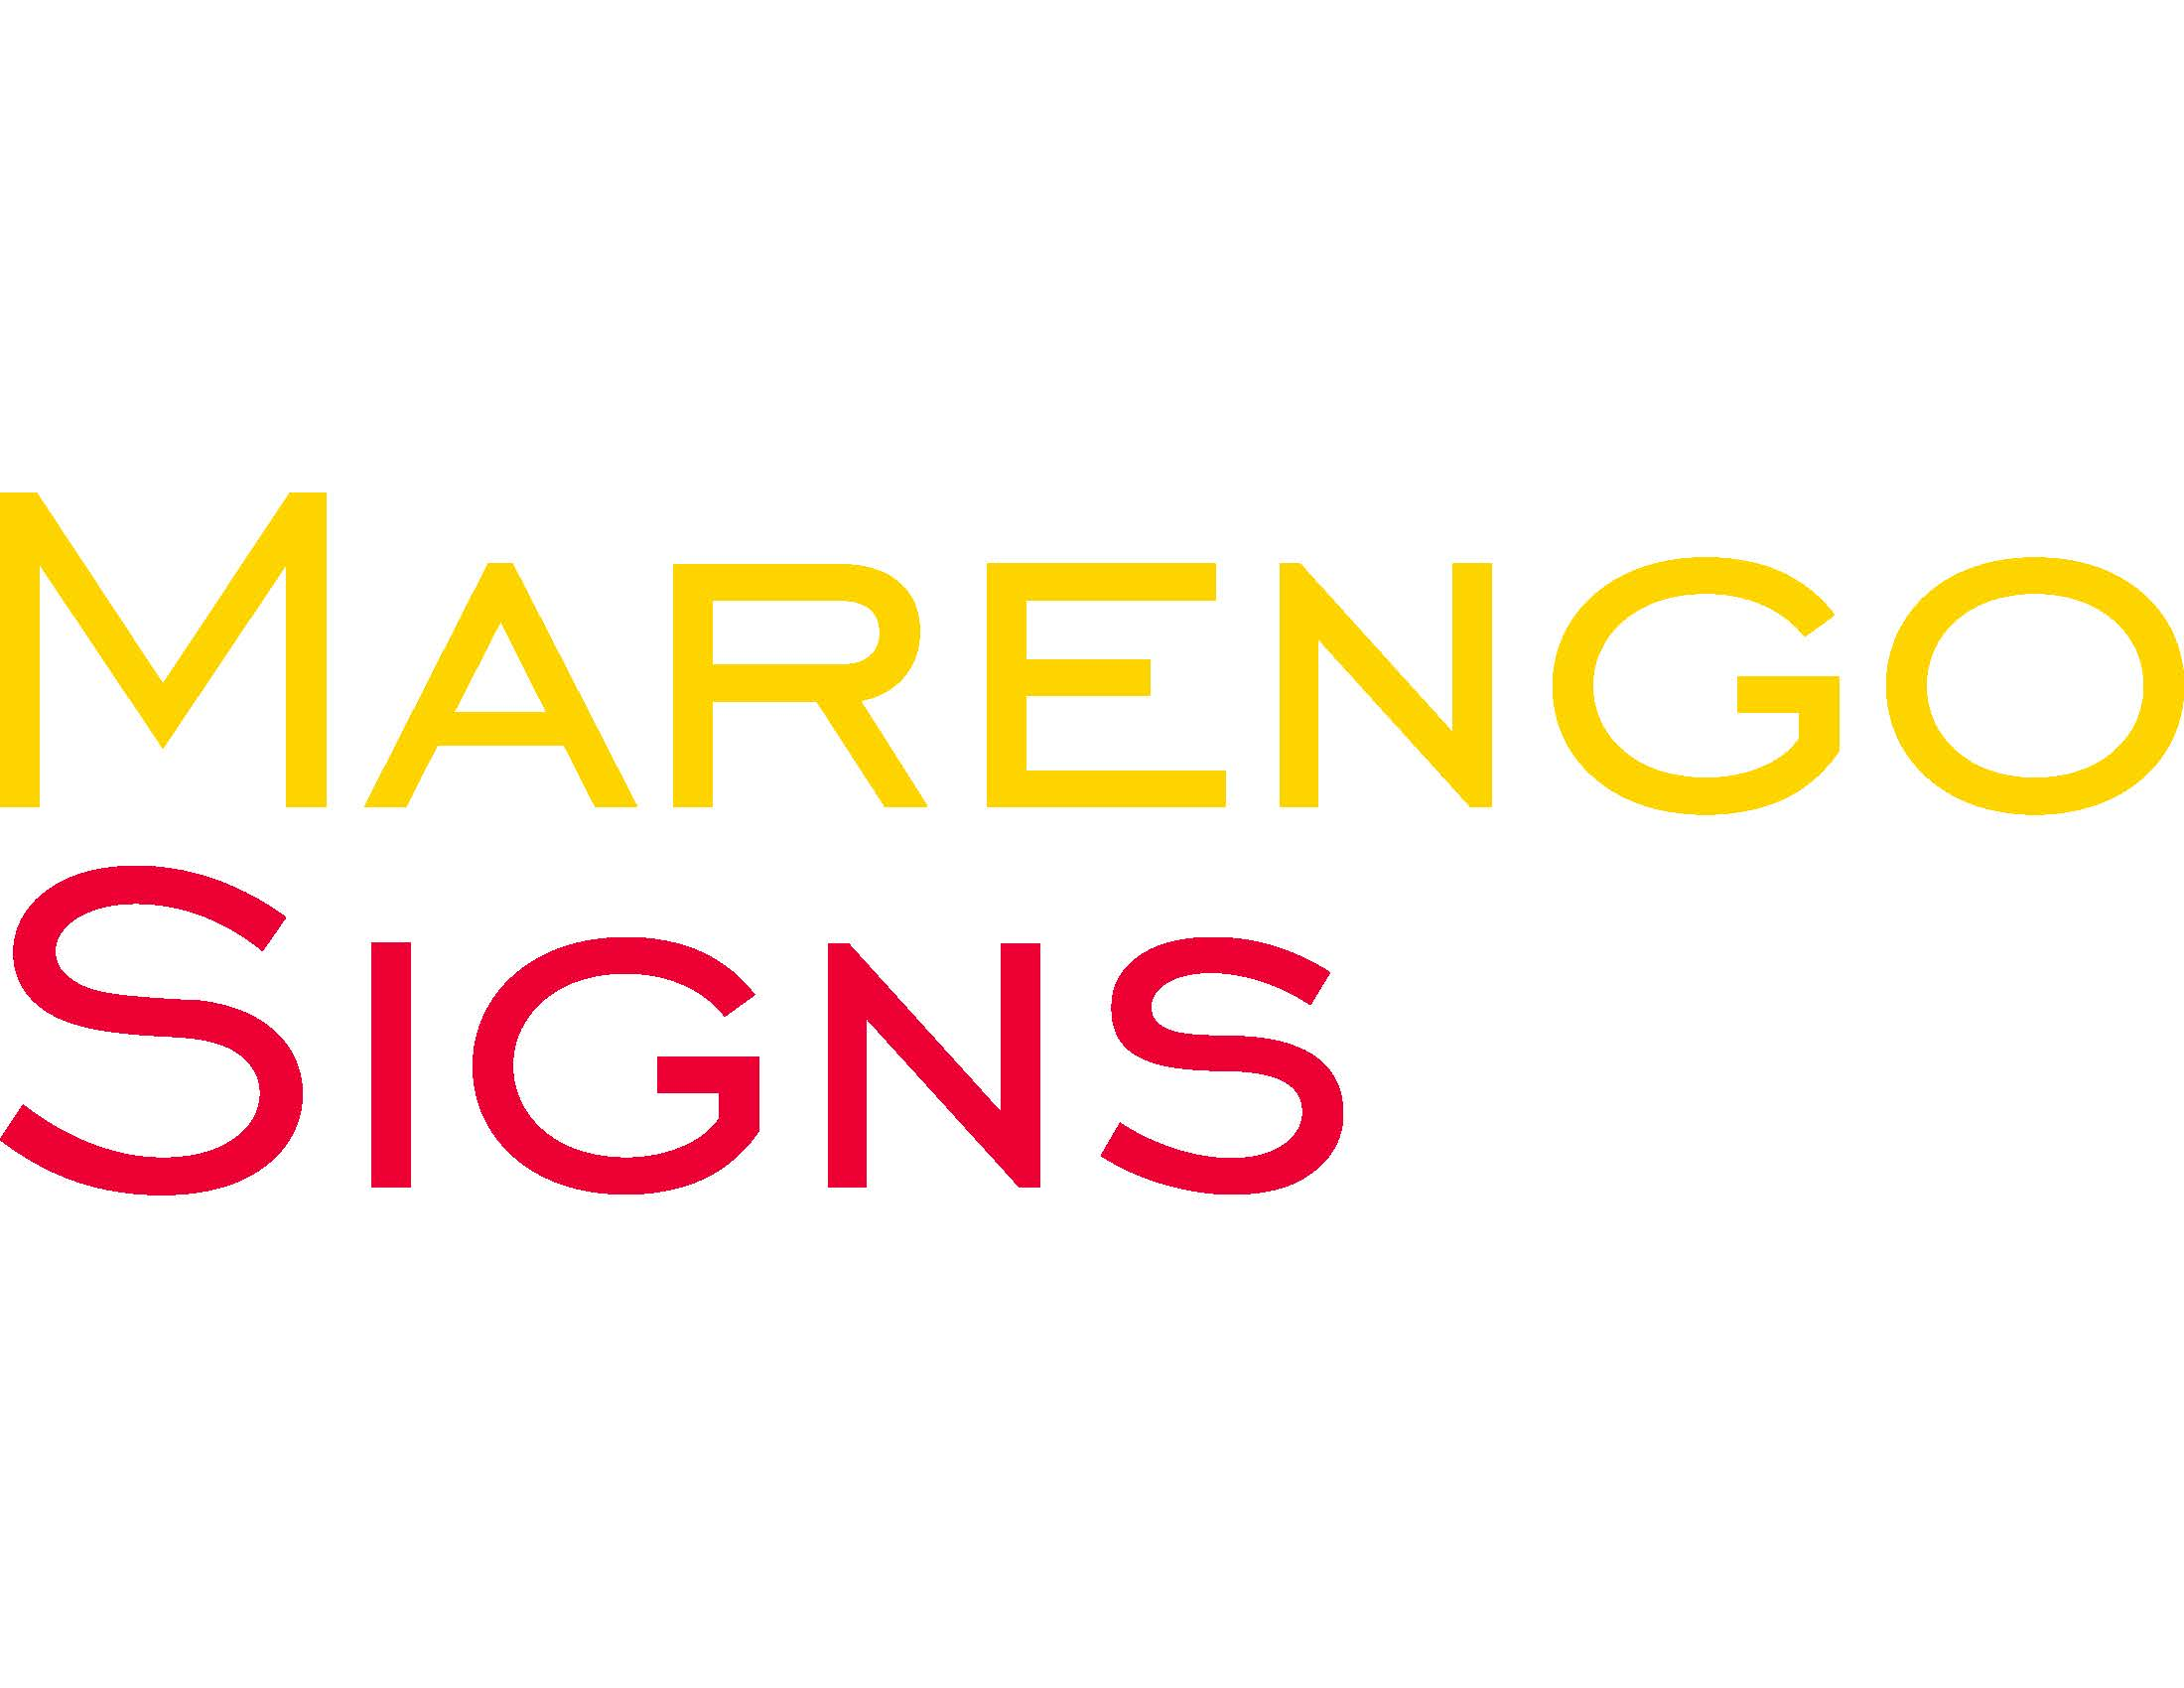 Marengo Signs Logo